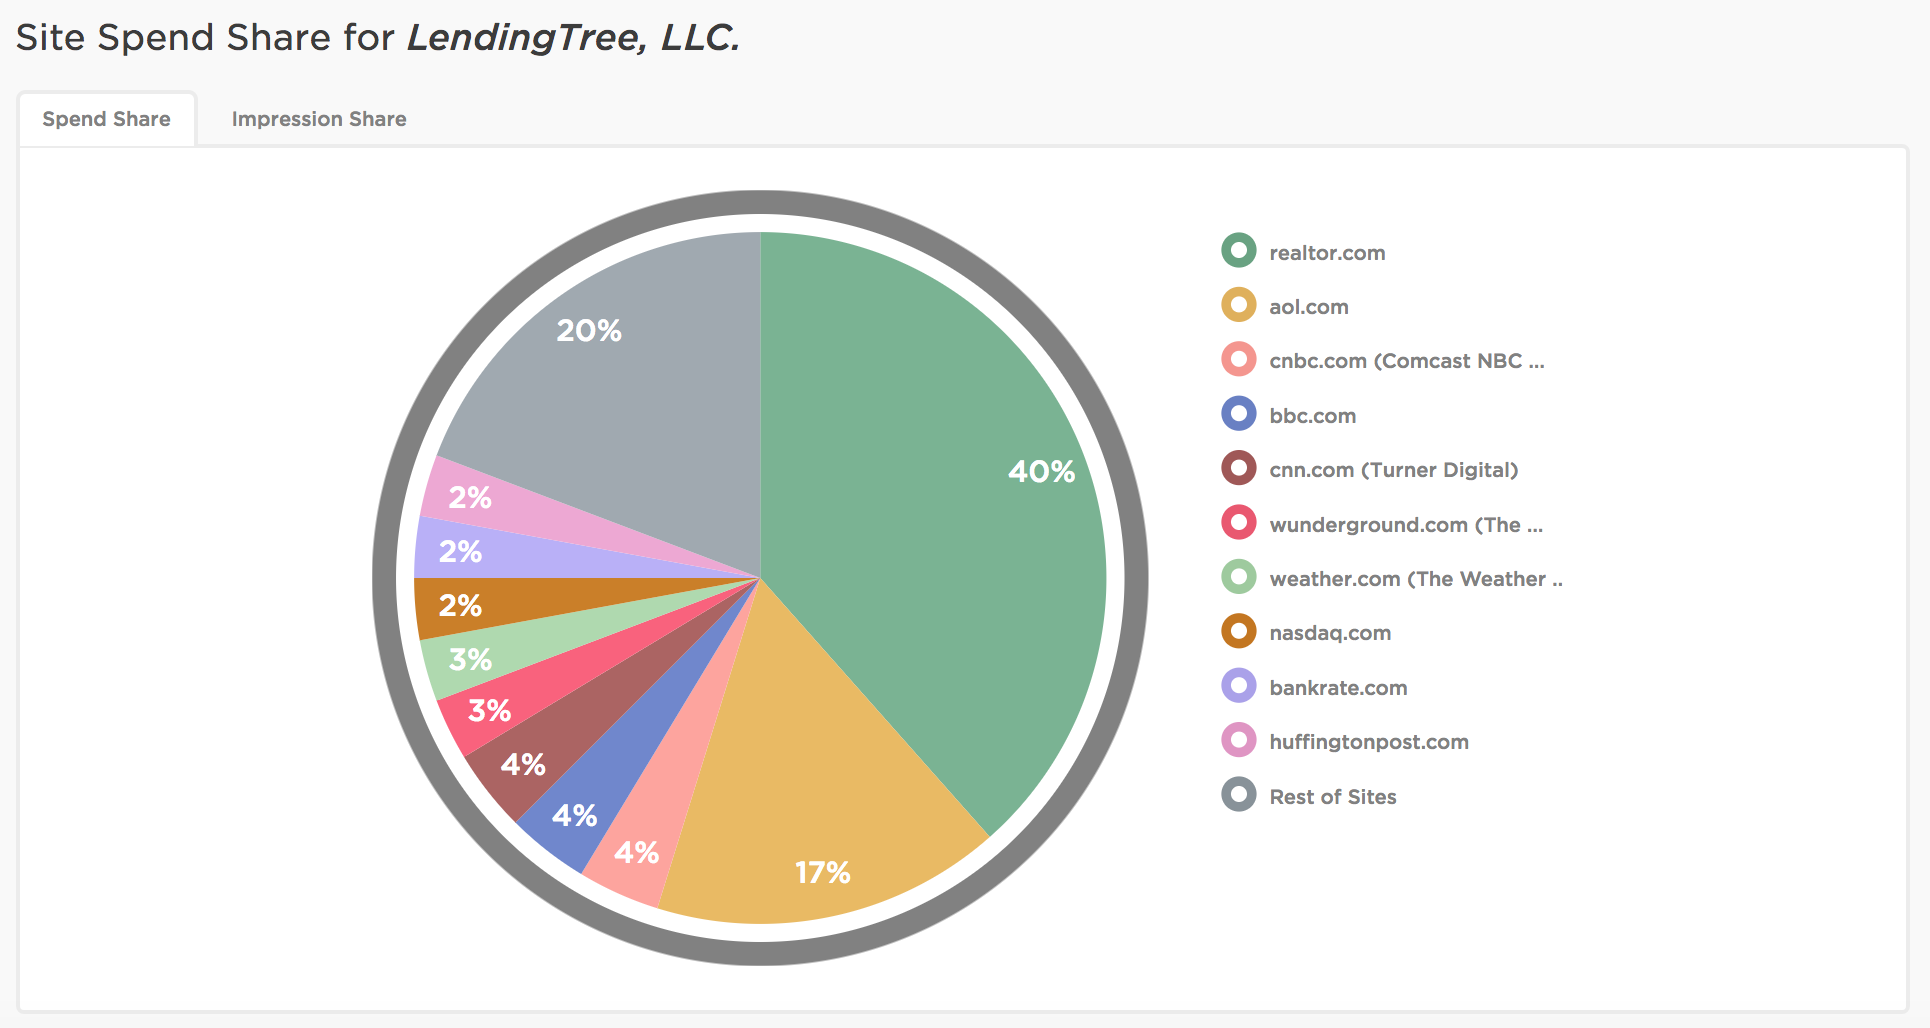 lending_tree_site_spend.png